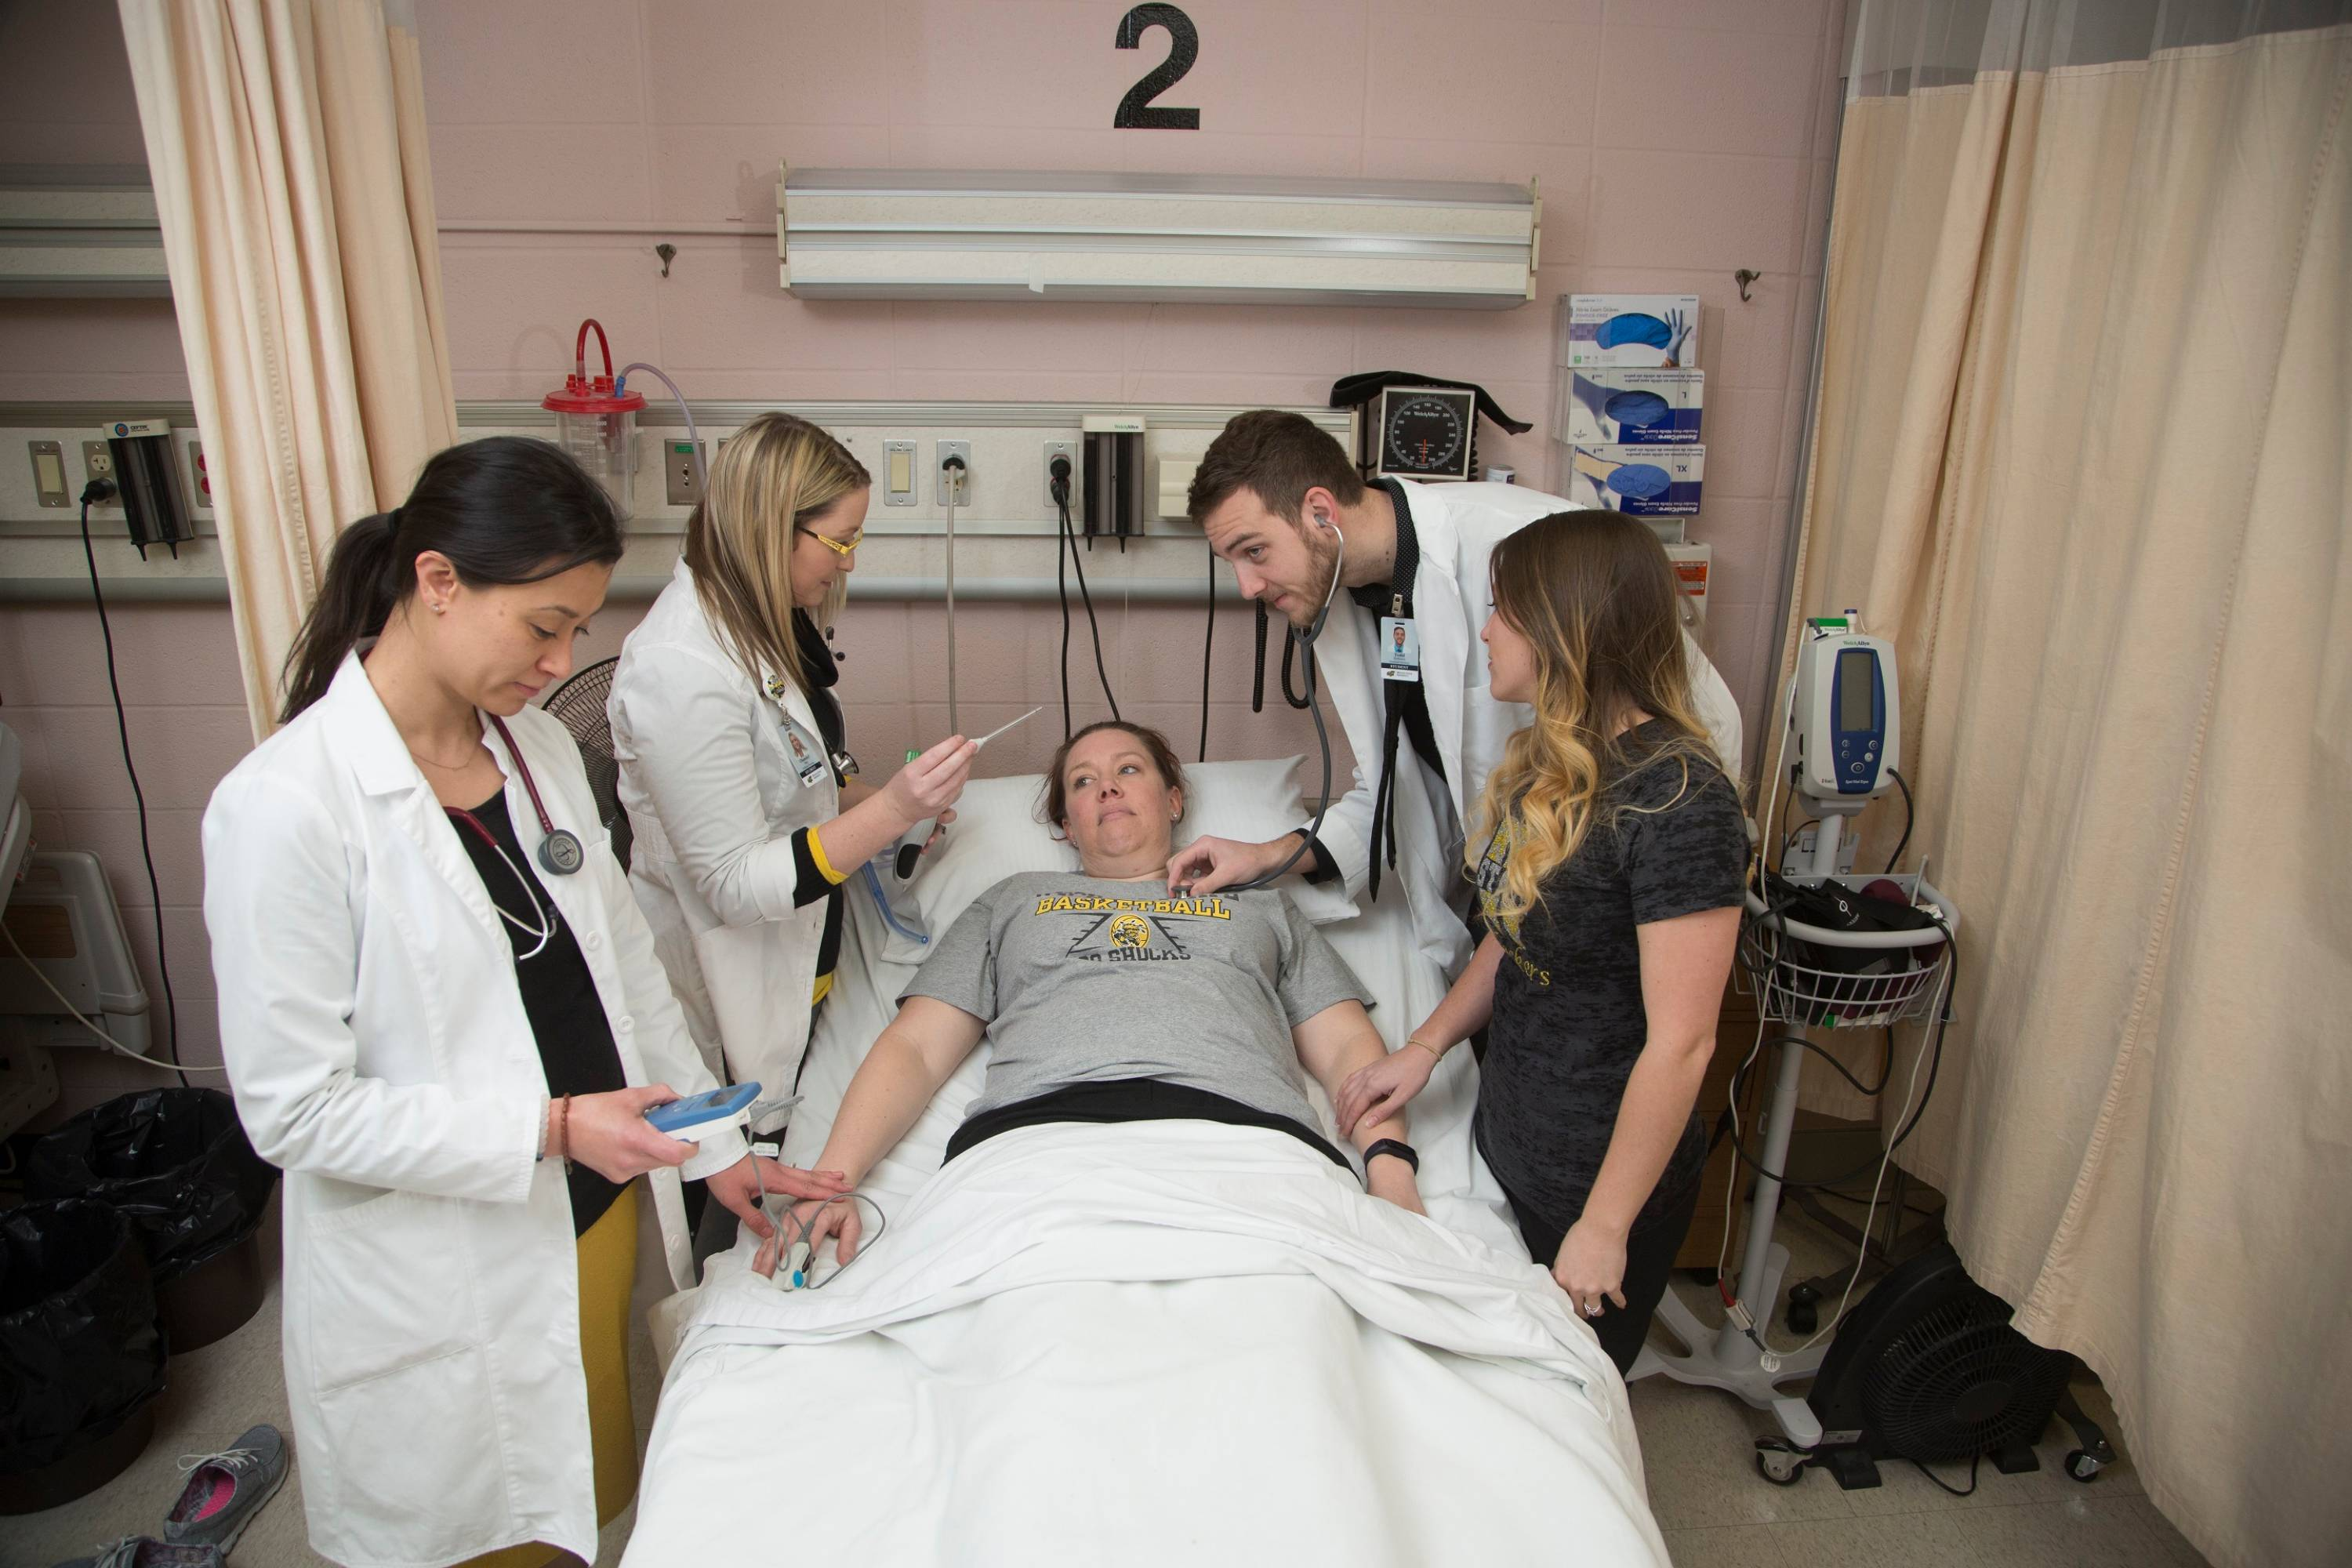 Nursing students checking patient